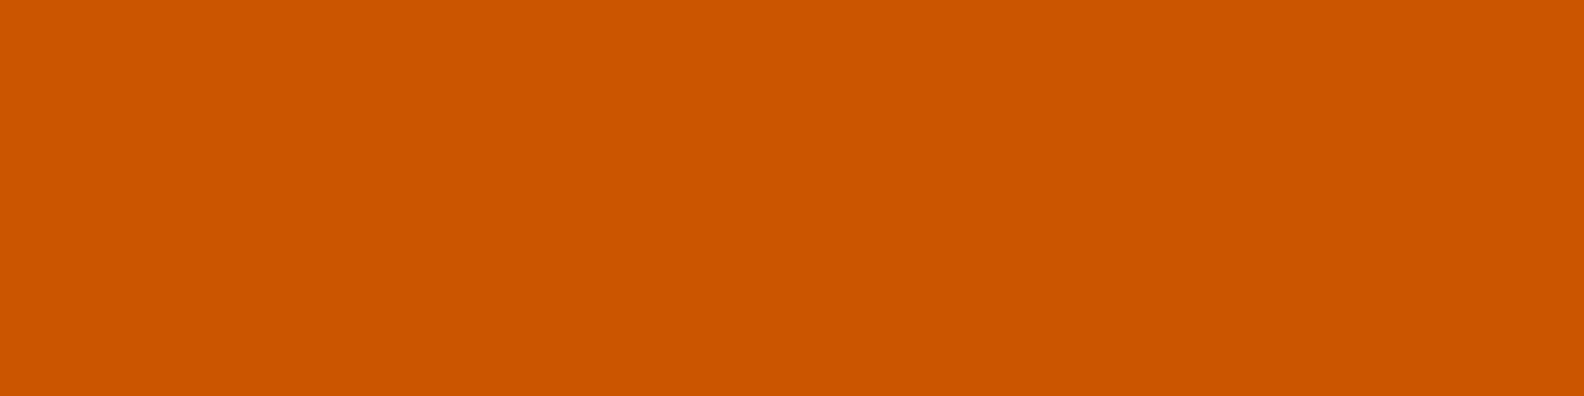 1584x396 Burnt Orange Solid Color Background